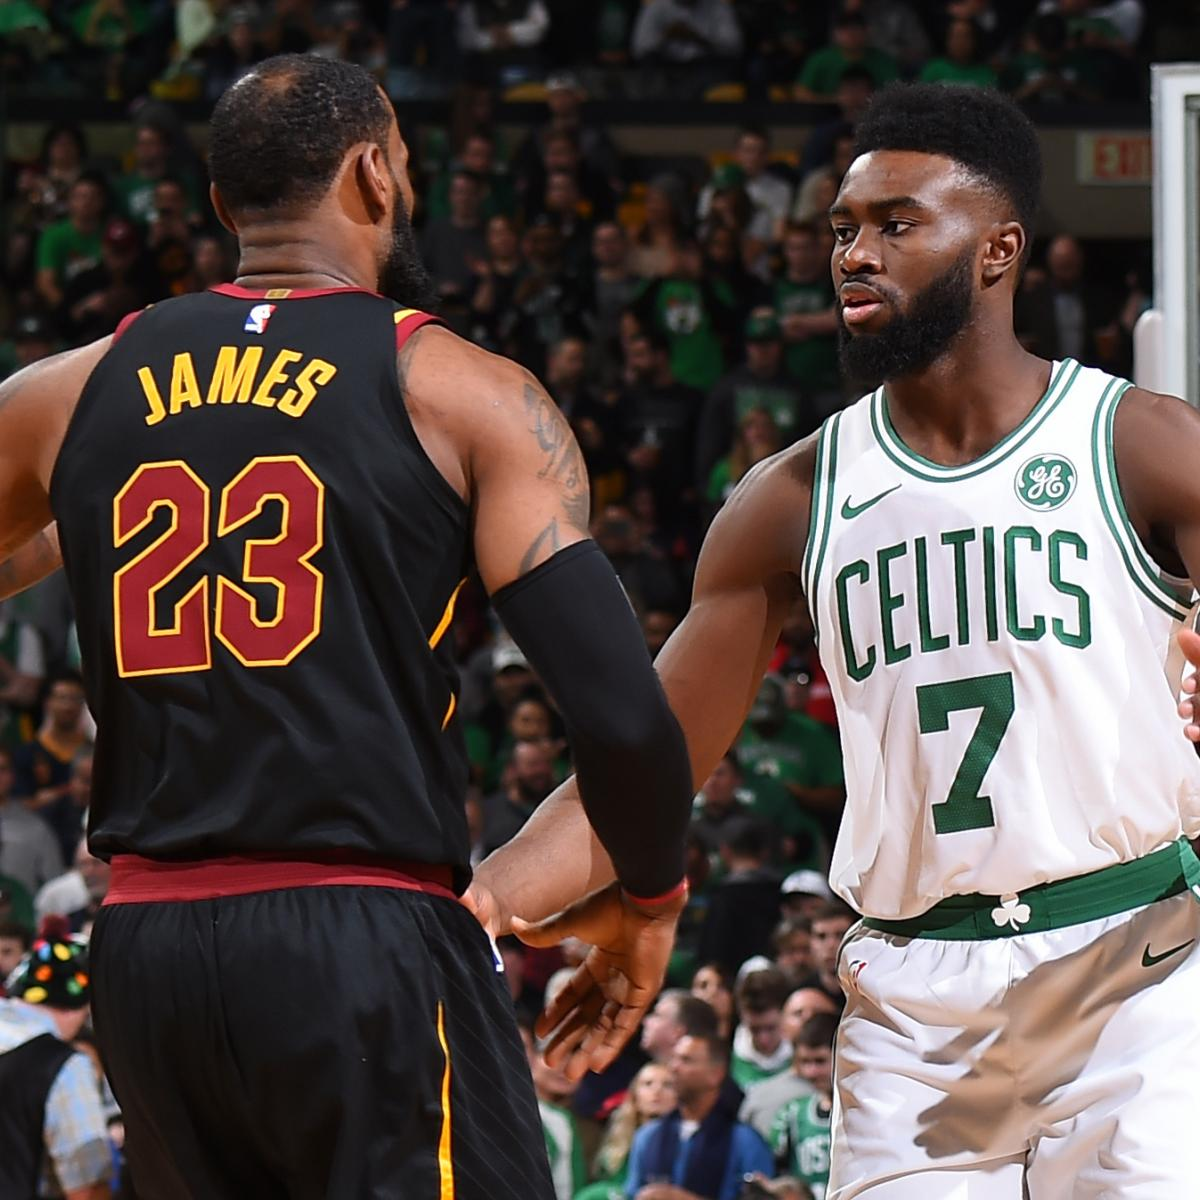 Jaylen Brown Wanted Celtics 'To Be the Team That Went Through' LeBron James